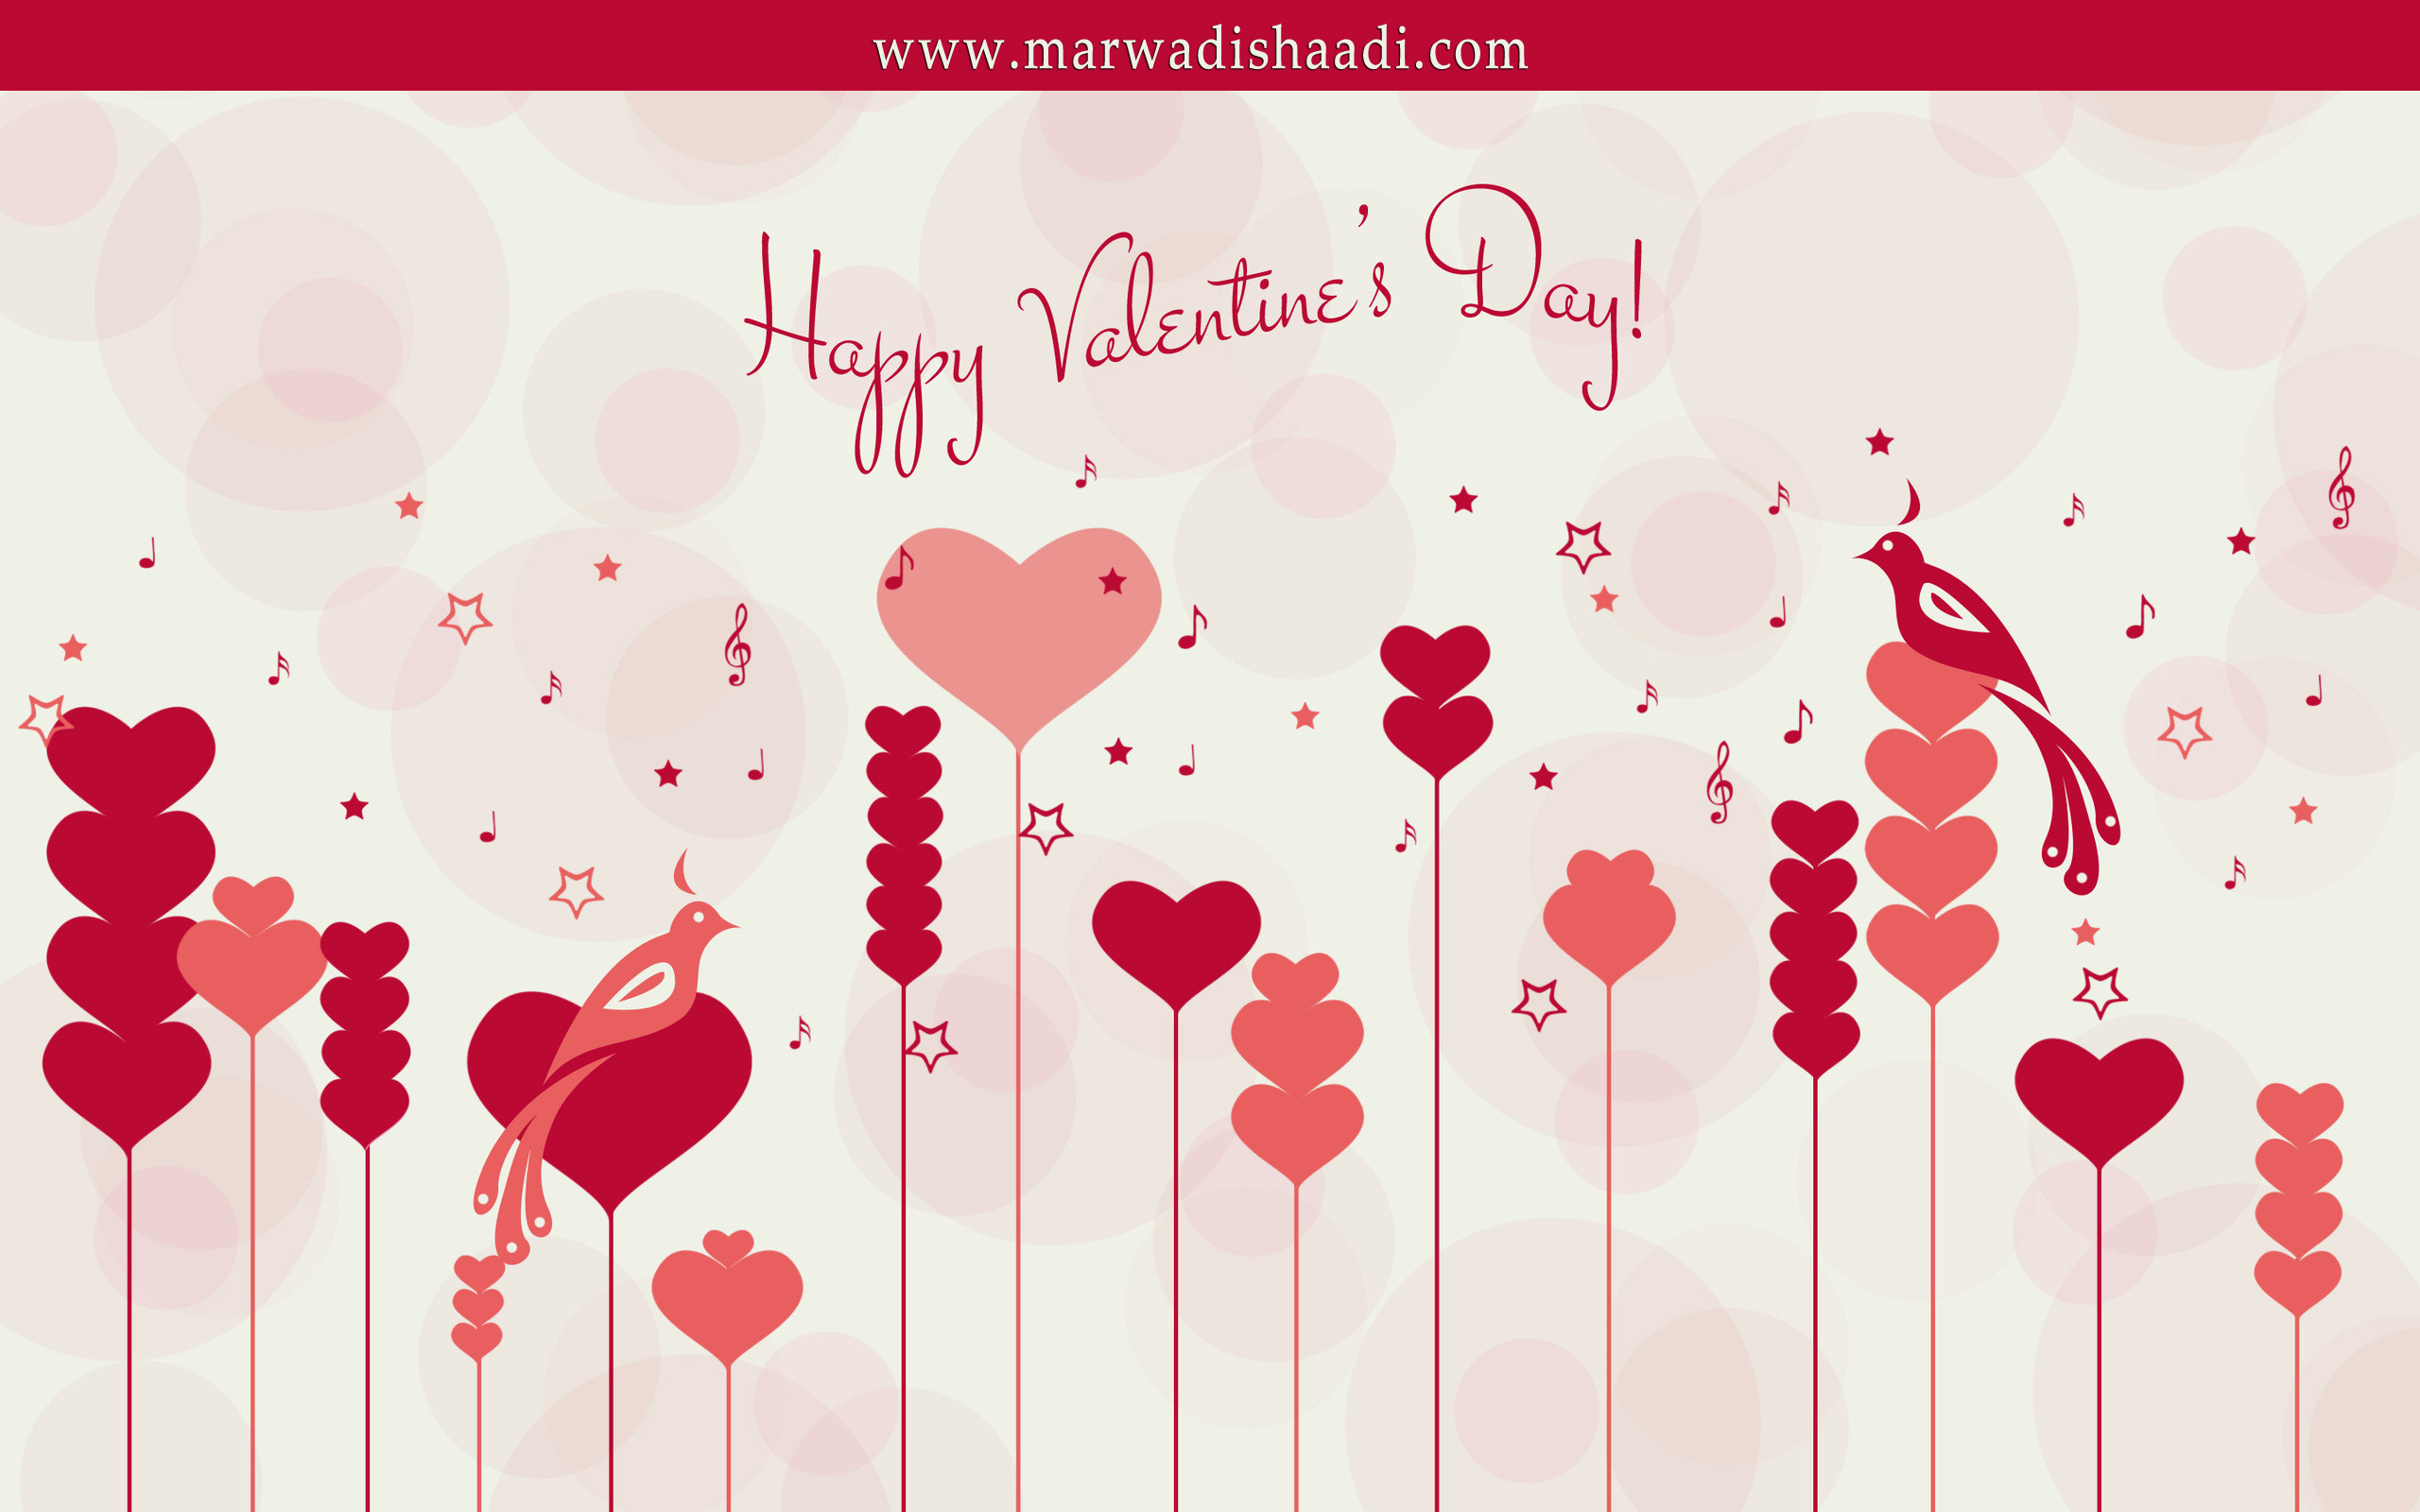 Sexy Guys Valentine's Day Wallpaper   … you day key heart love will happy valentines  day romantic cute sexy   Be My Valentine   Pinterest